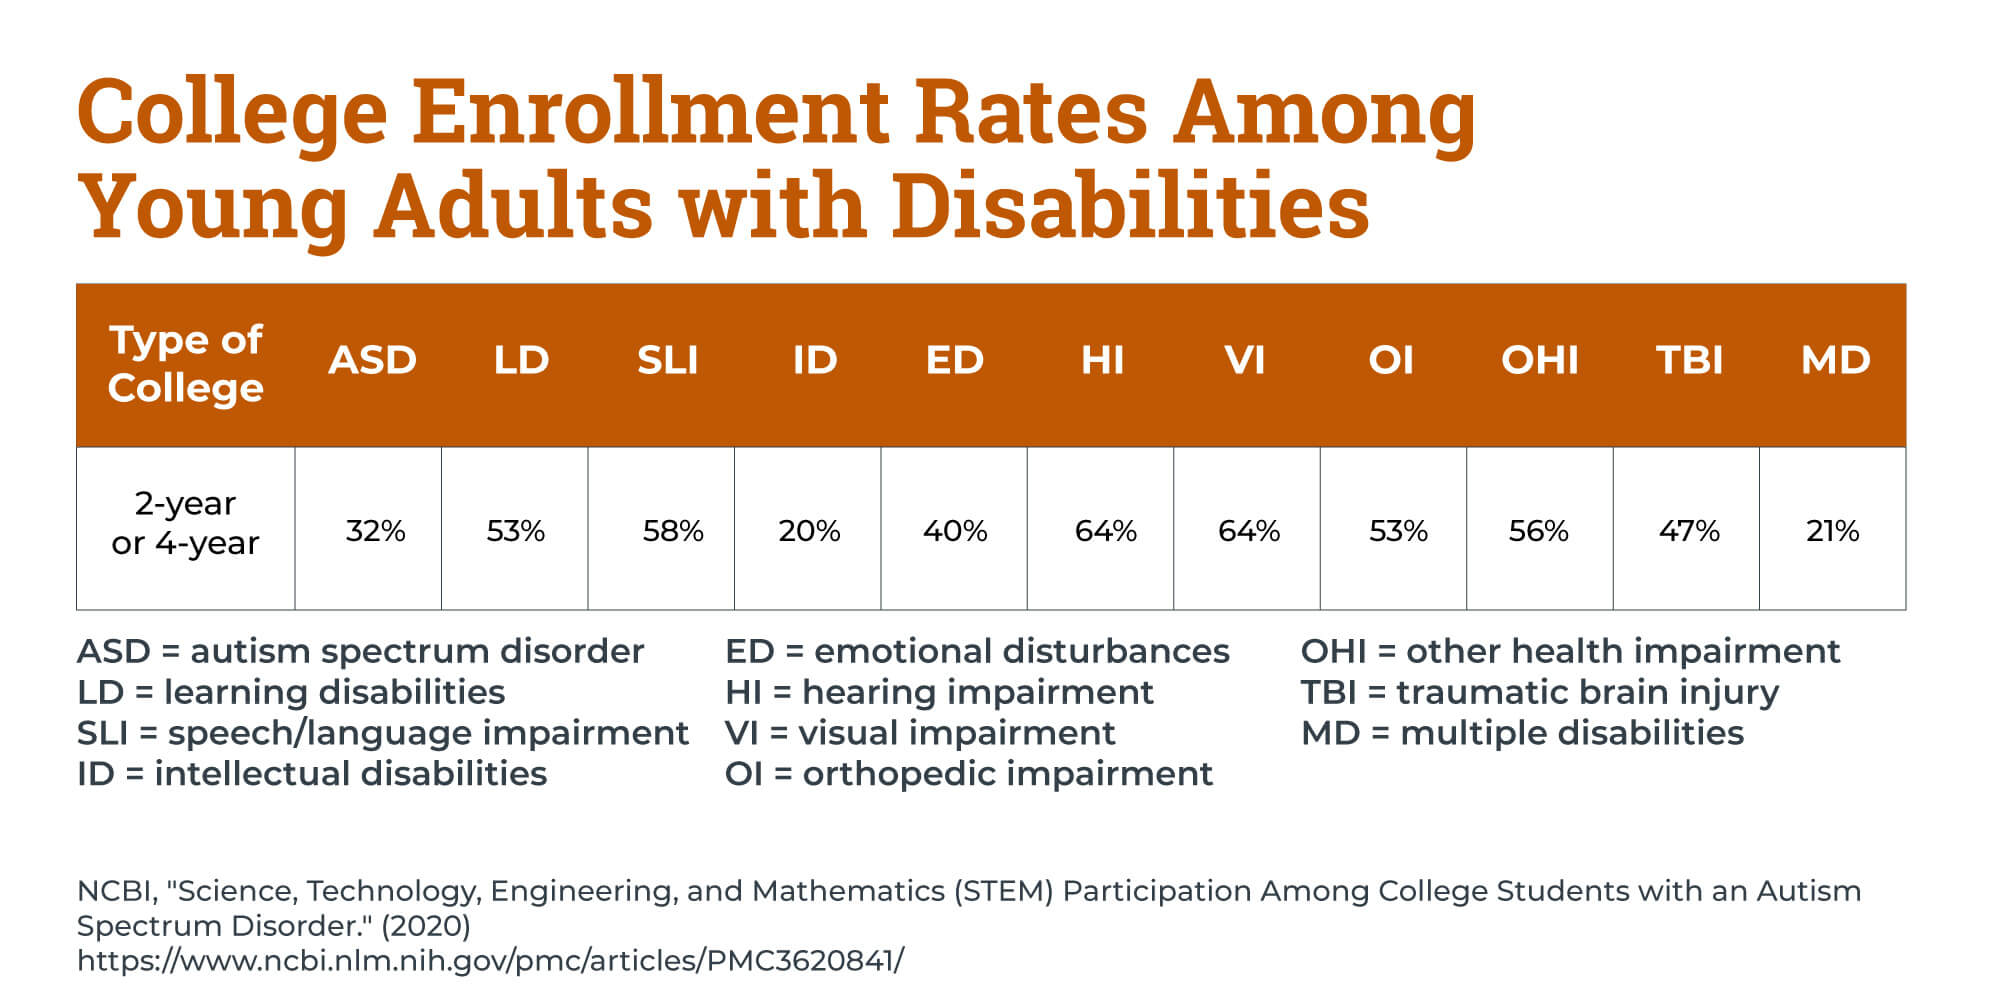 A chart showing the college enrollment rates among young adults with autism compared to other disabilities.